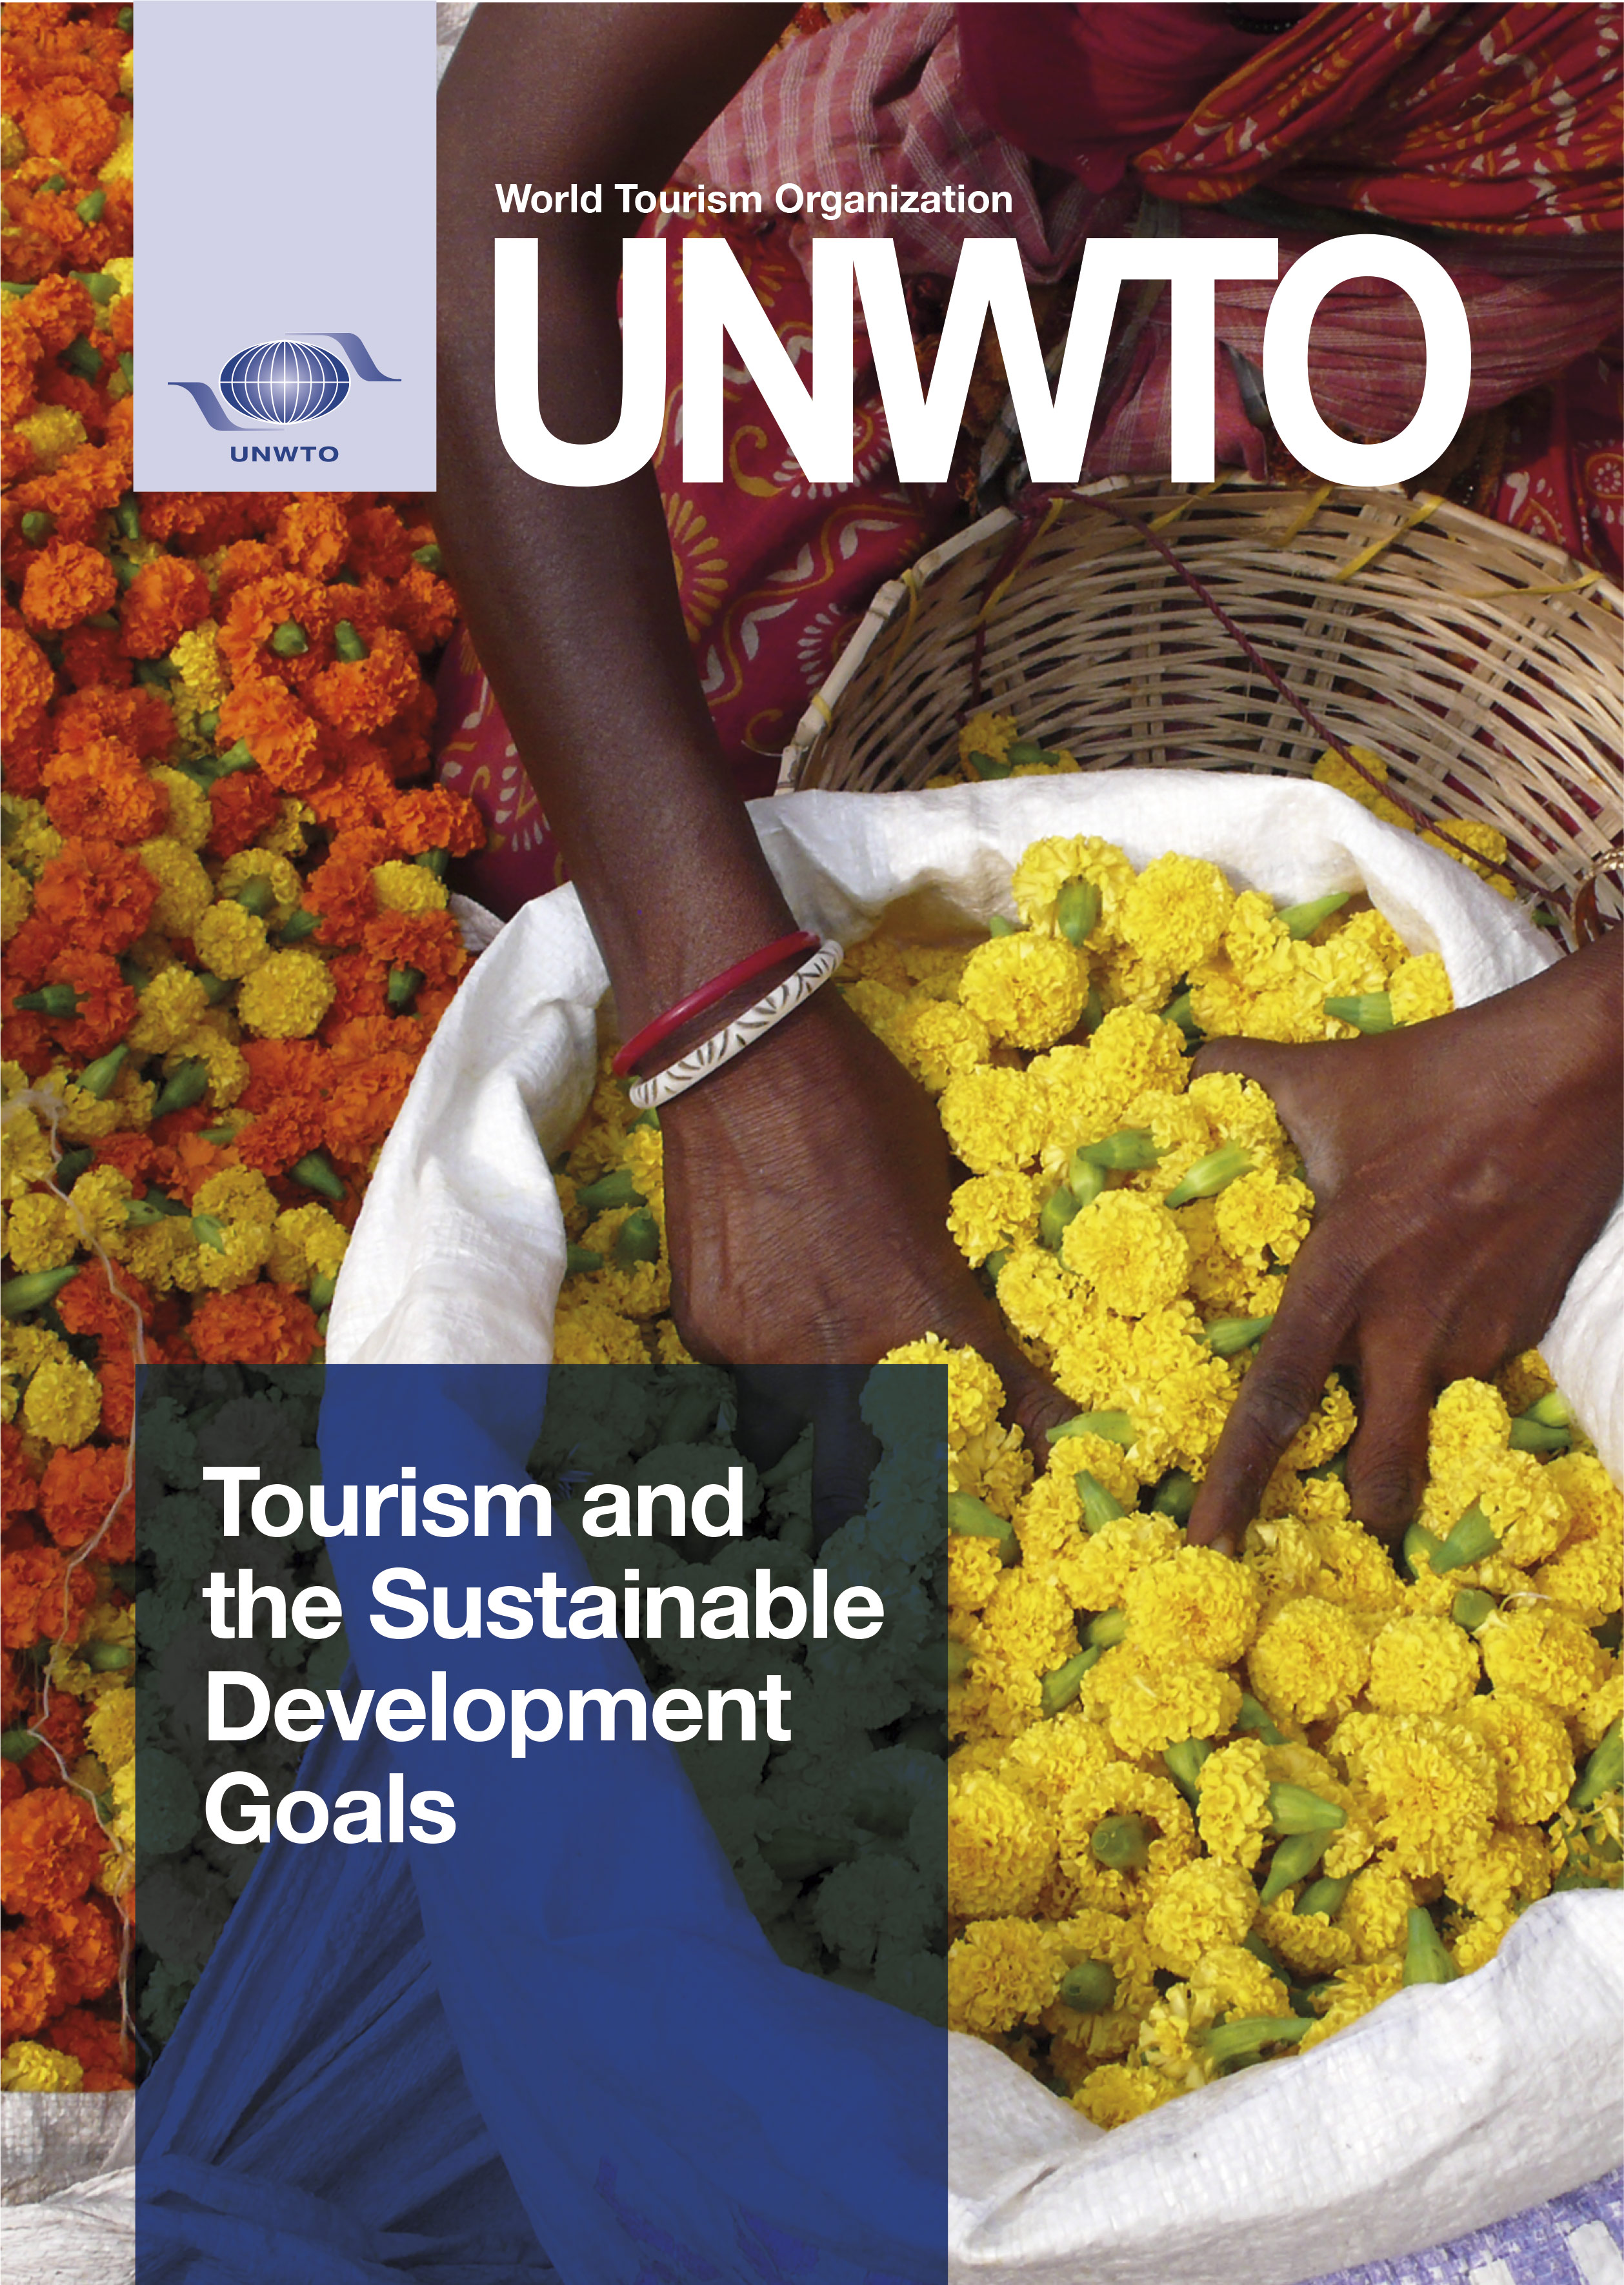 Tourism and the Sustainable Development Goals